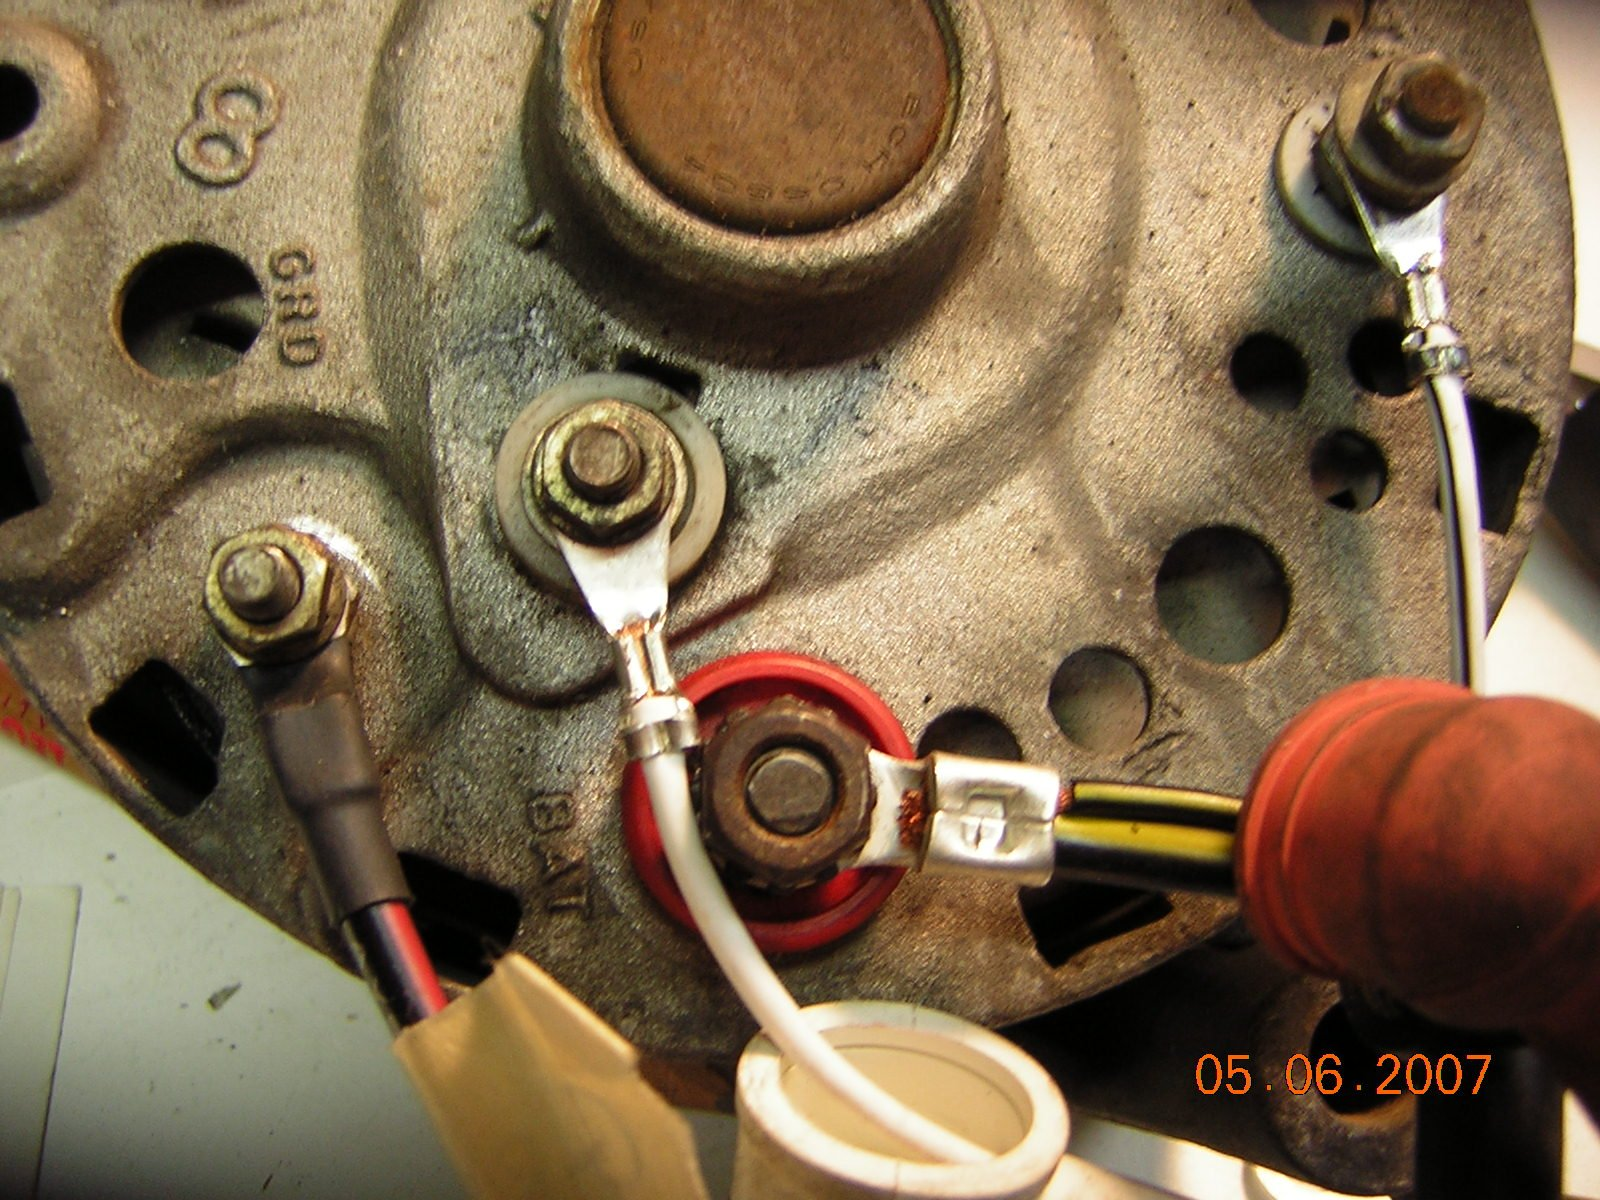 1964 to 1965 Mustang wiring harness conversion discoveries ...